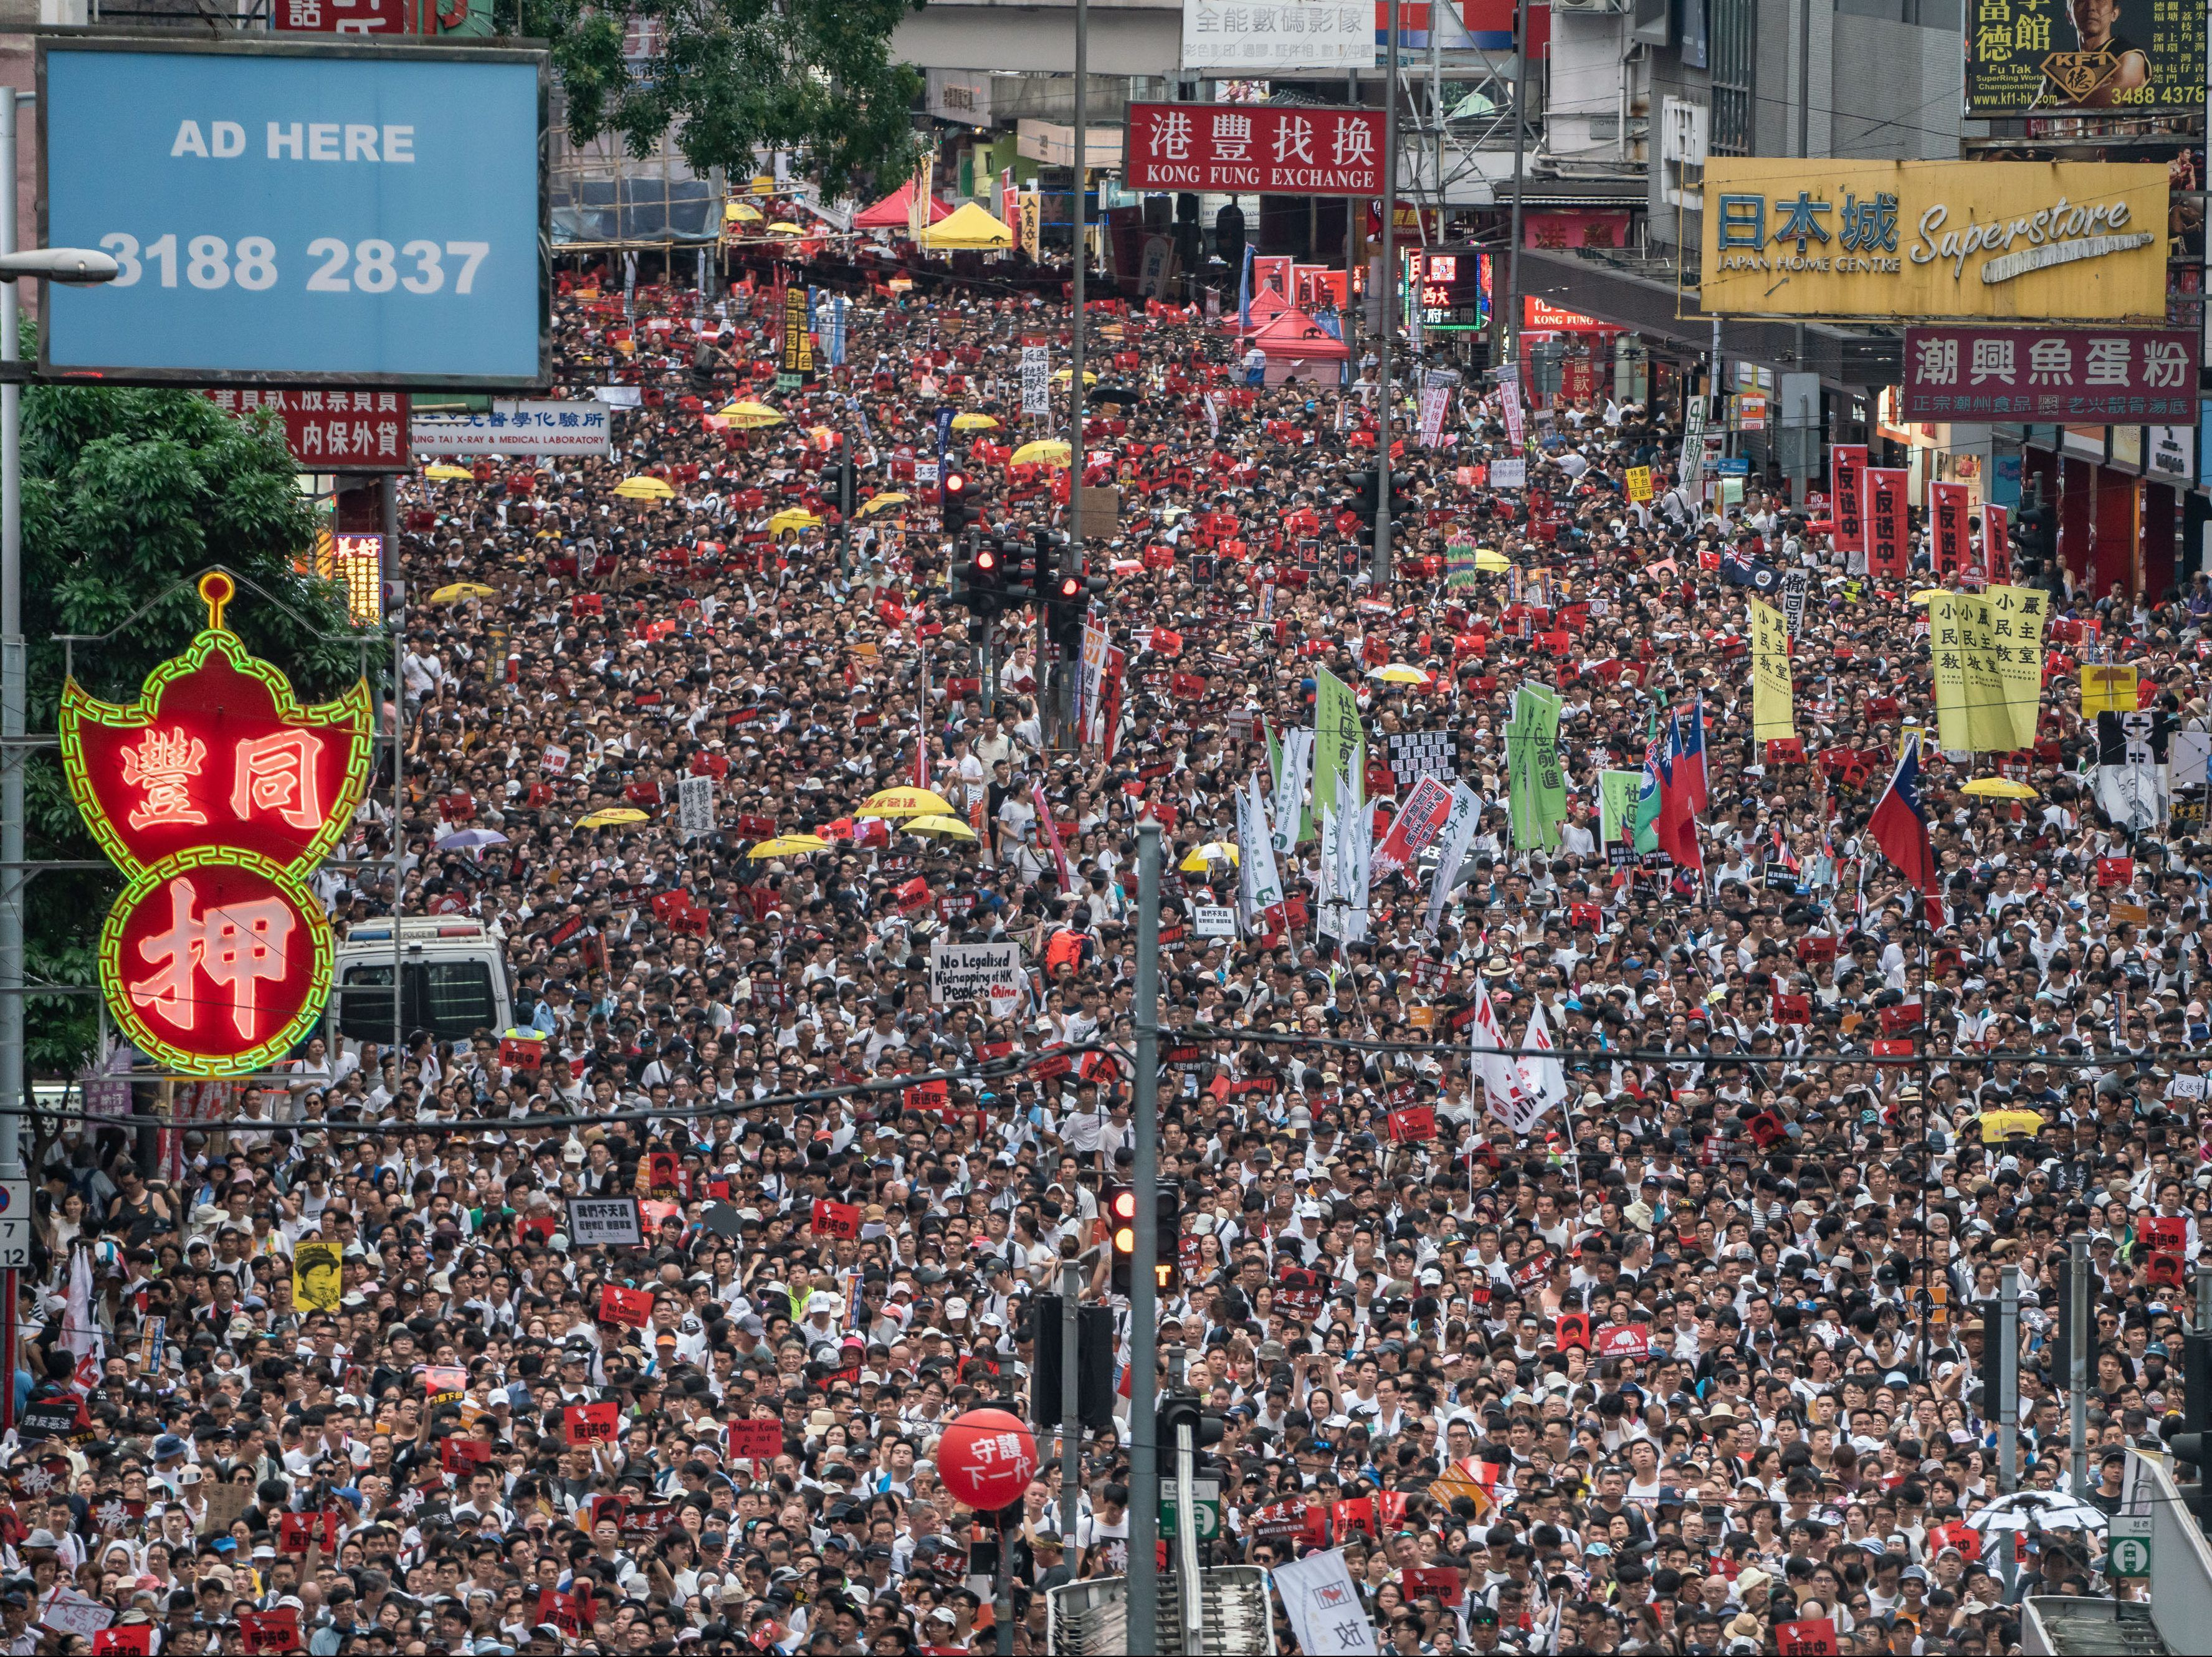 Hong Kong Plunged Into Political Crisis After Huge Protest Against